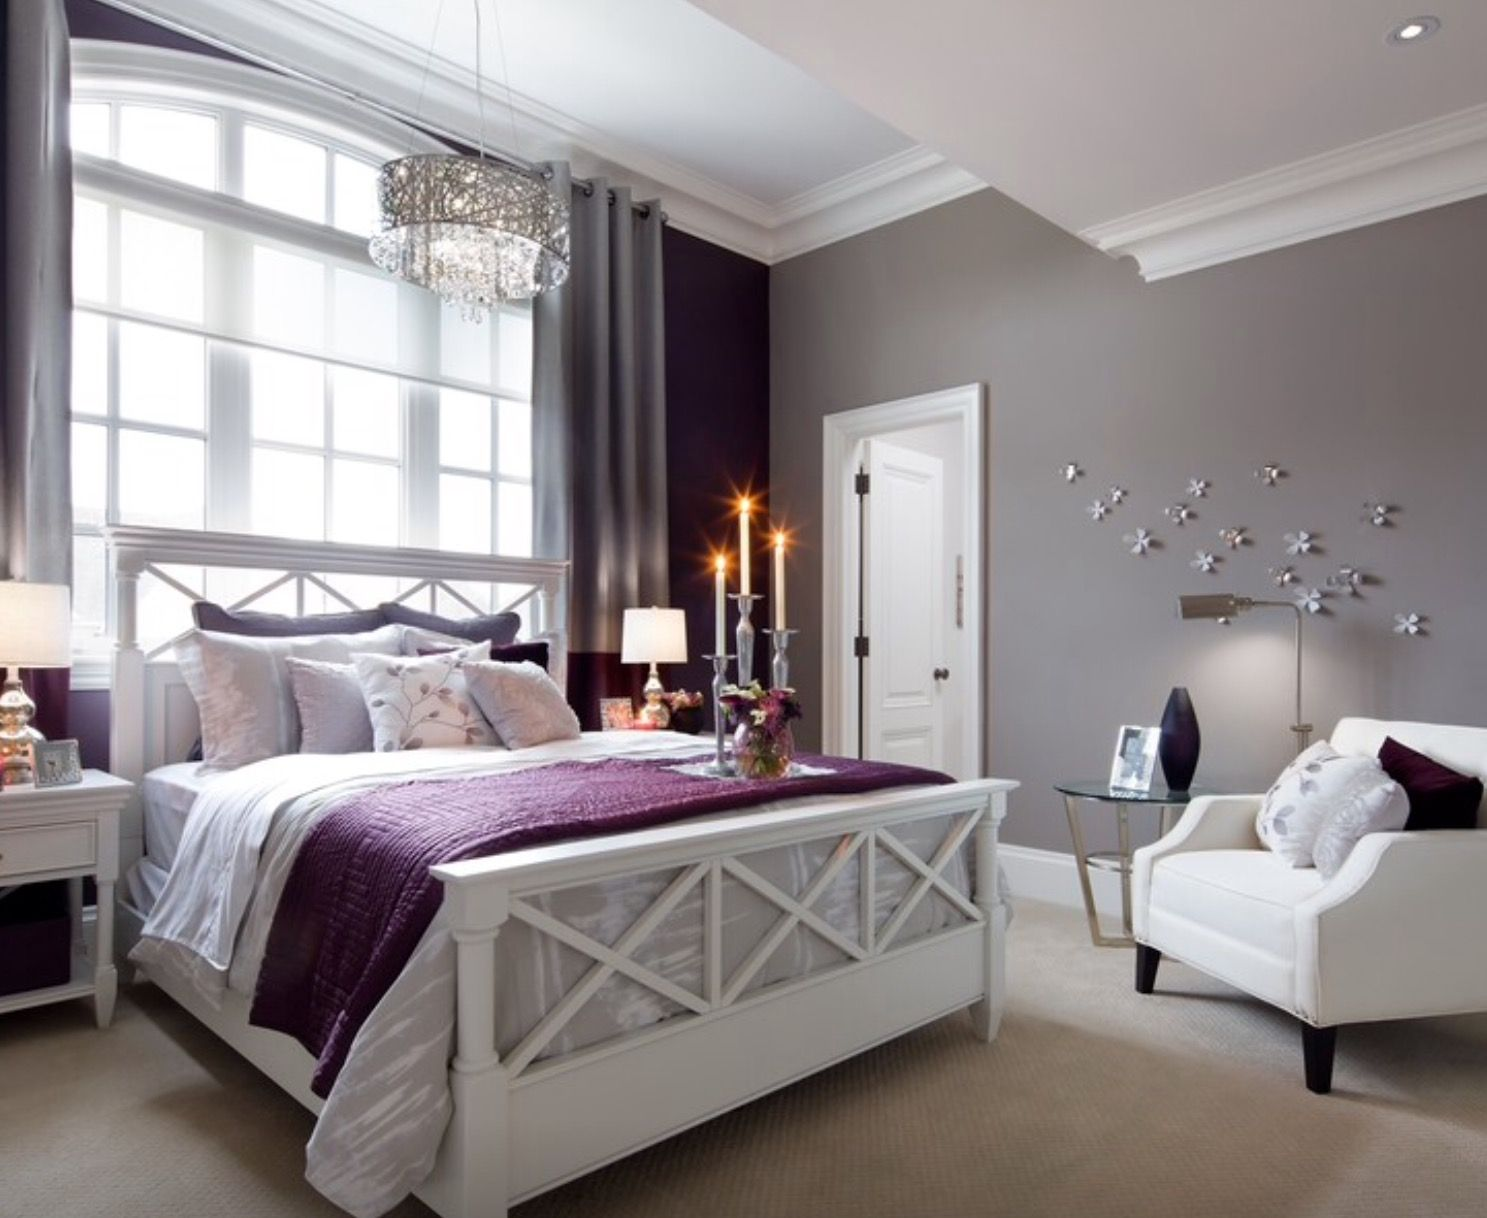 Explore Teen Bedrooms White Bedrooms and more